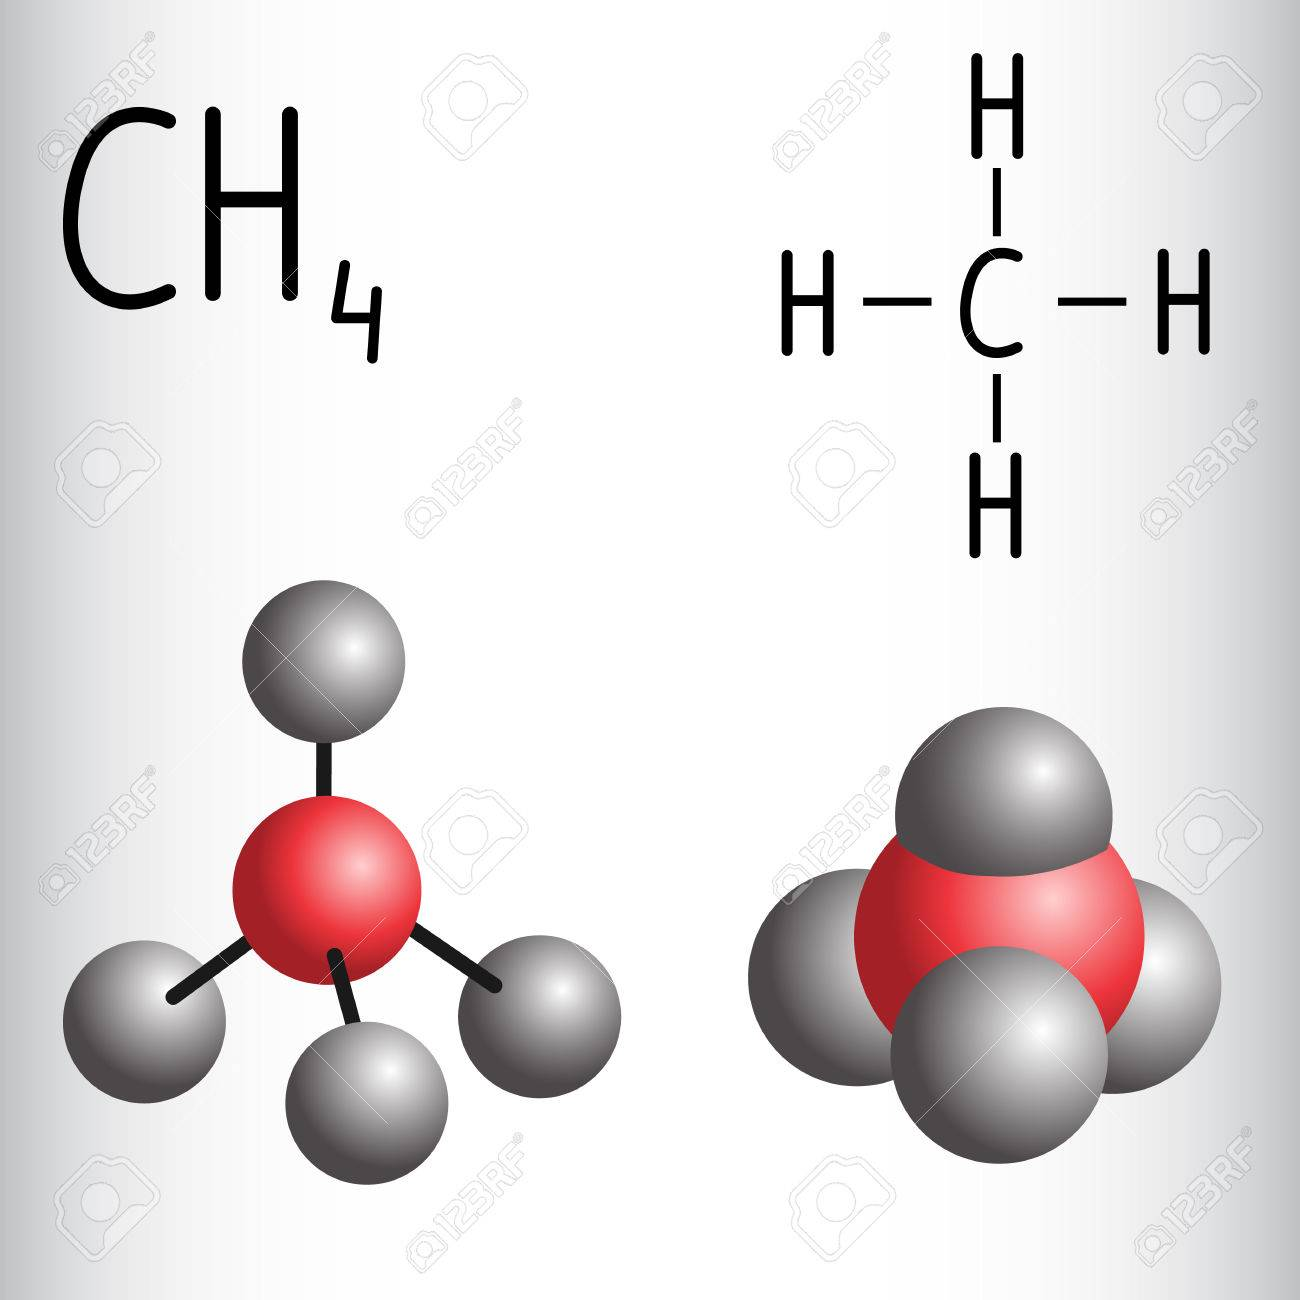 Chemical formula and molecule model of methane ch4 vector chemical formula and molecule model of methane ch4 vector illustration stock vector 79575927 biocorpaavc Gallery